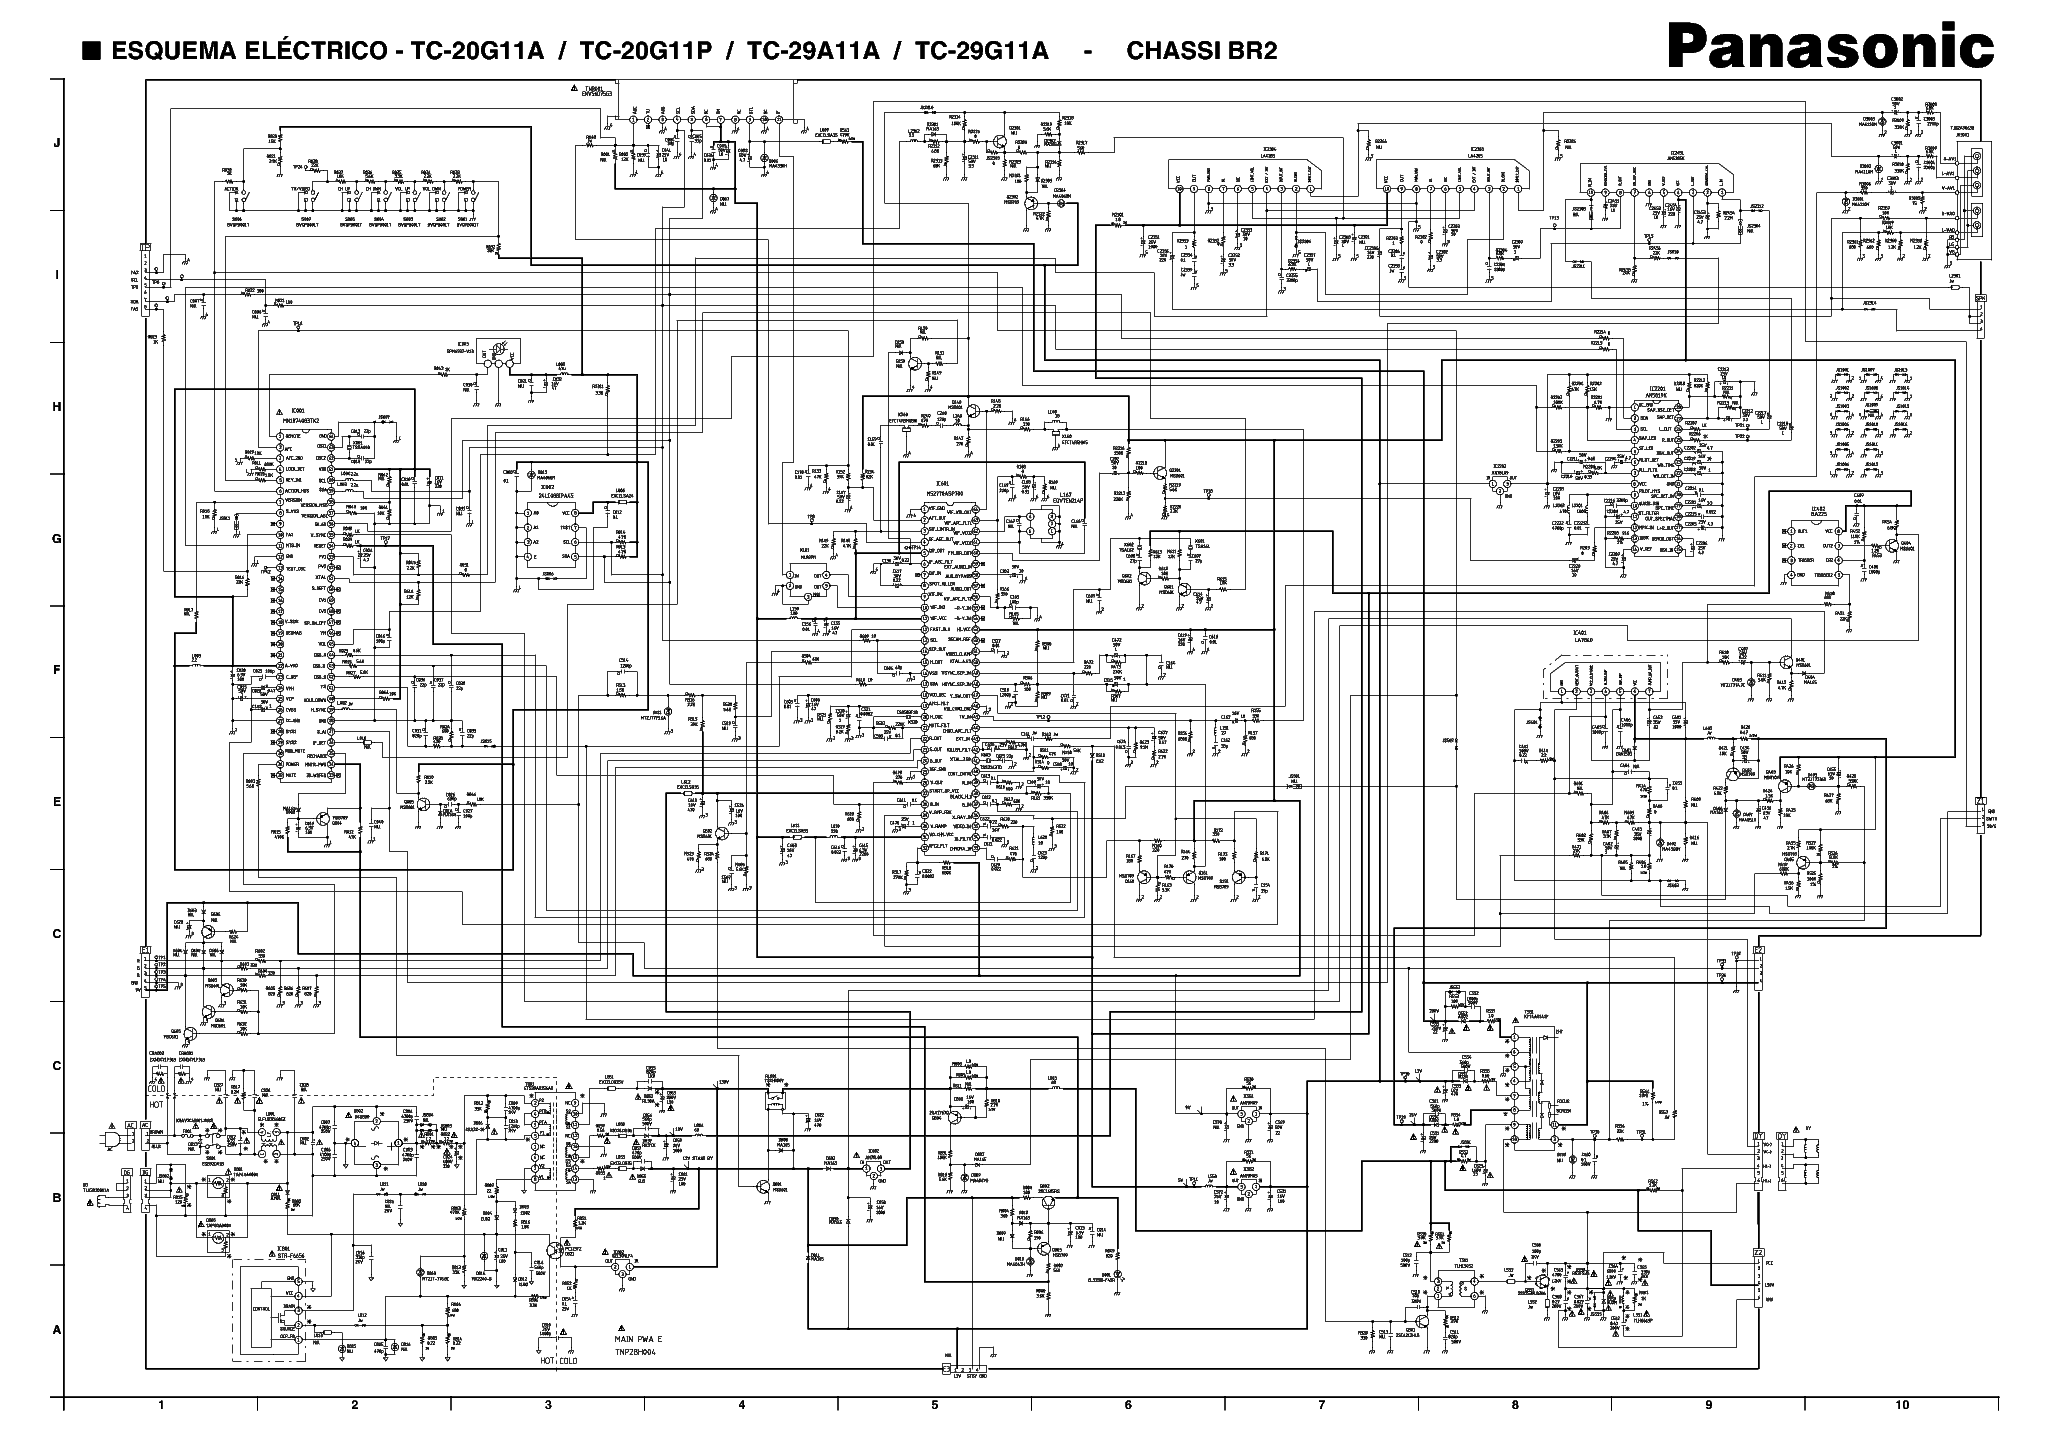 schematics diagrams free download: Panasonic tv wiring diagram free download wiring diagrams schematics